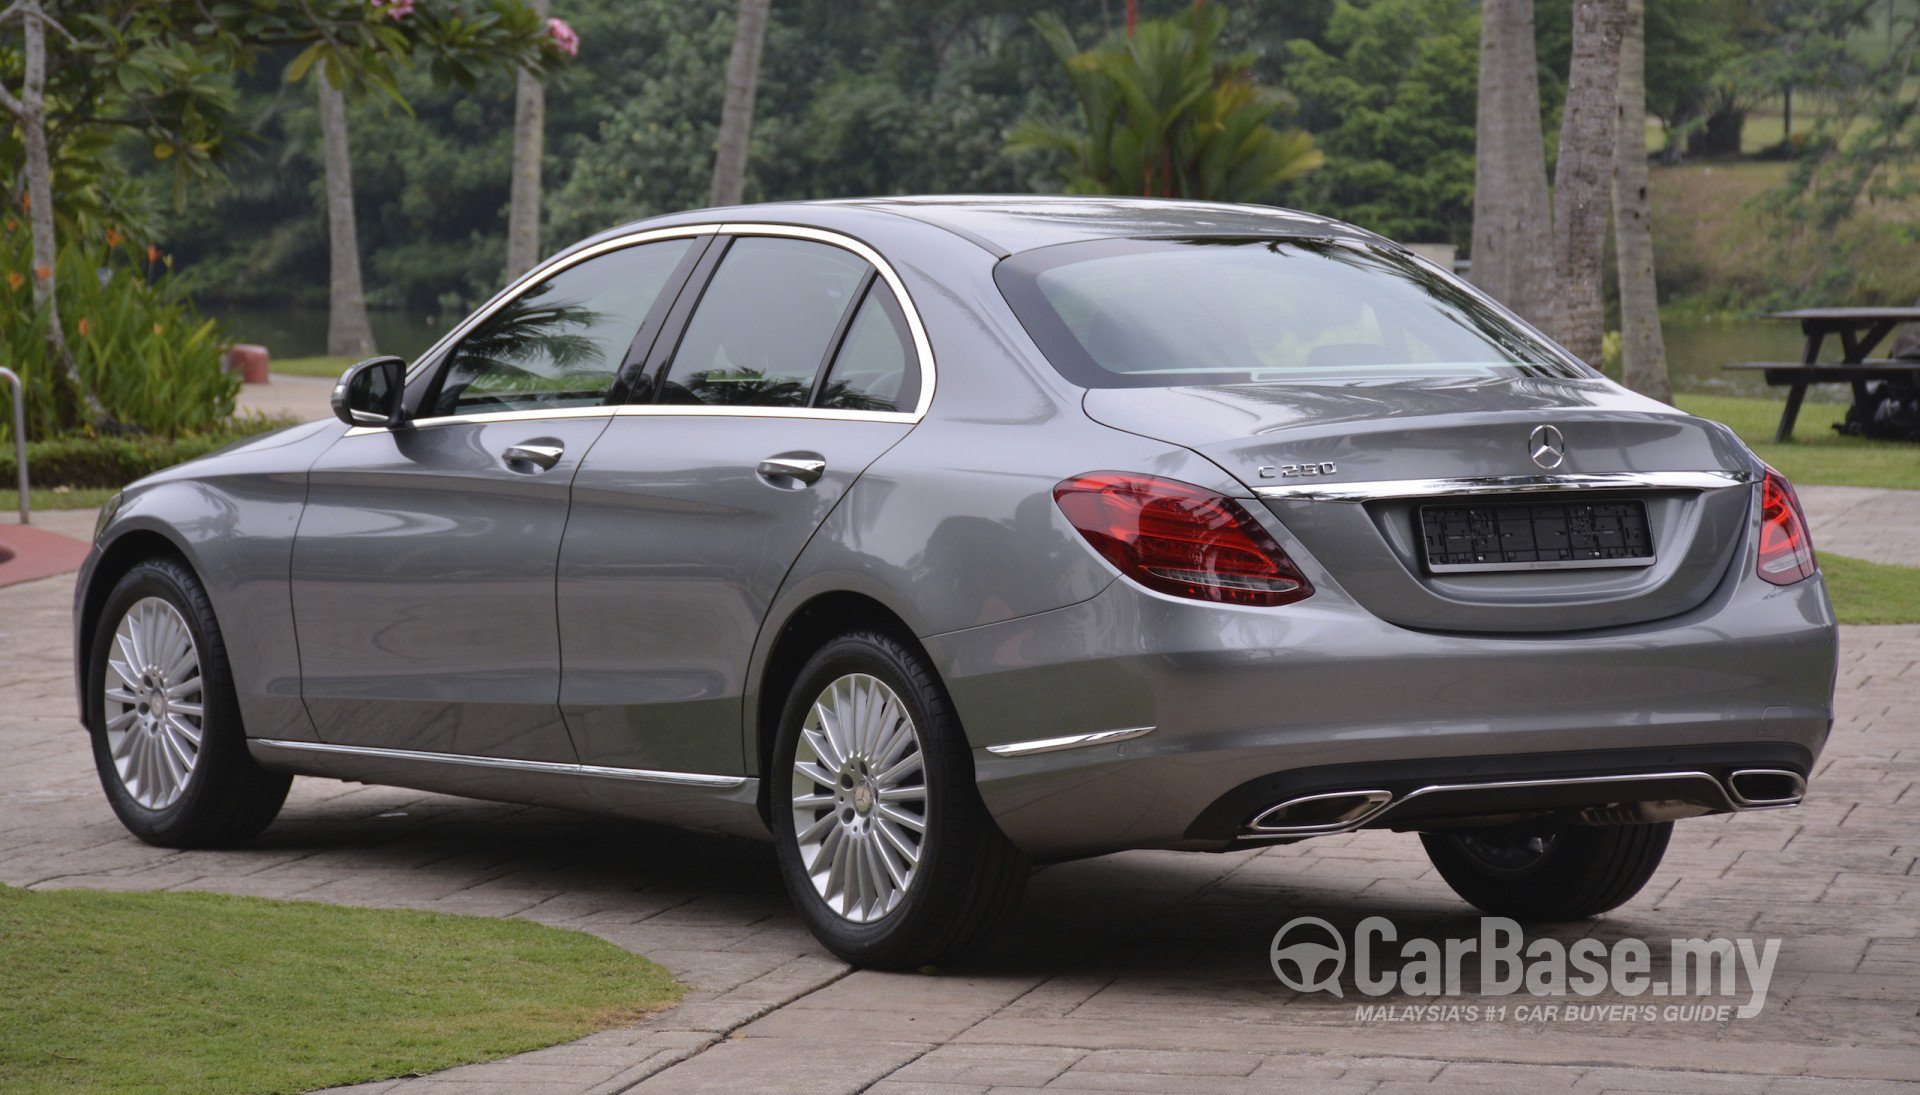 Mercedes benz c class w205 2014 exterior image 15899 in for Mercedes benz 2014 c class price